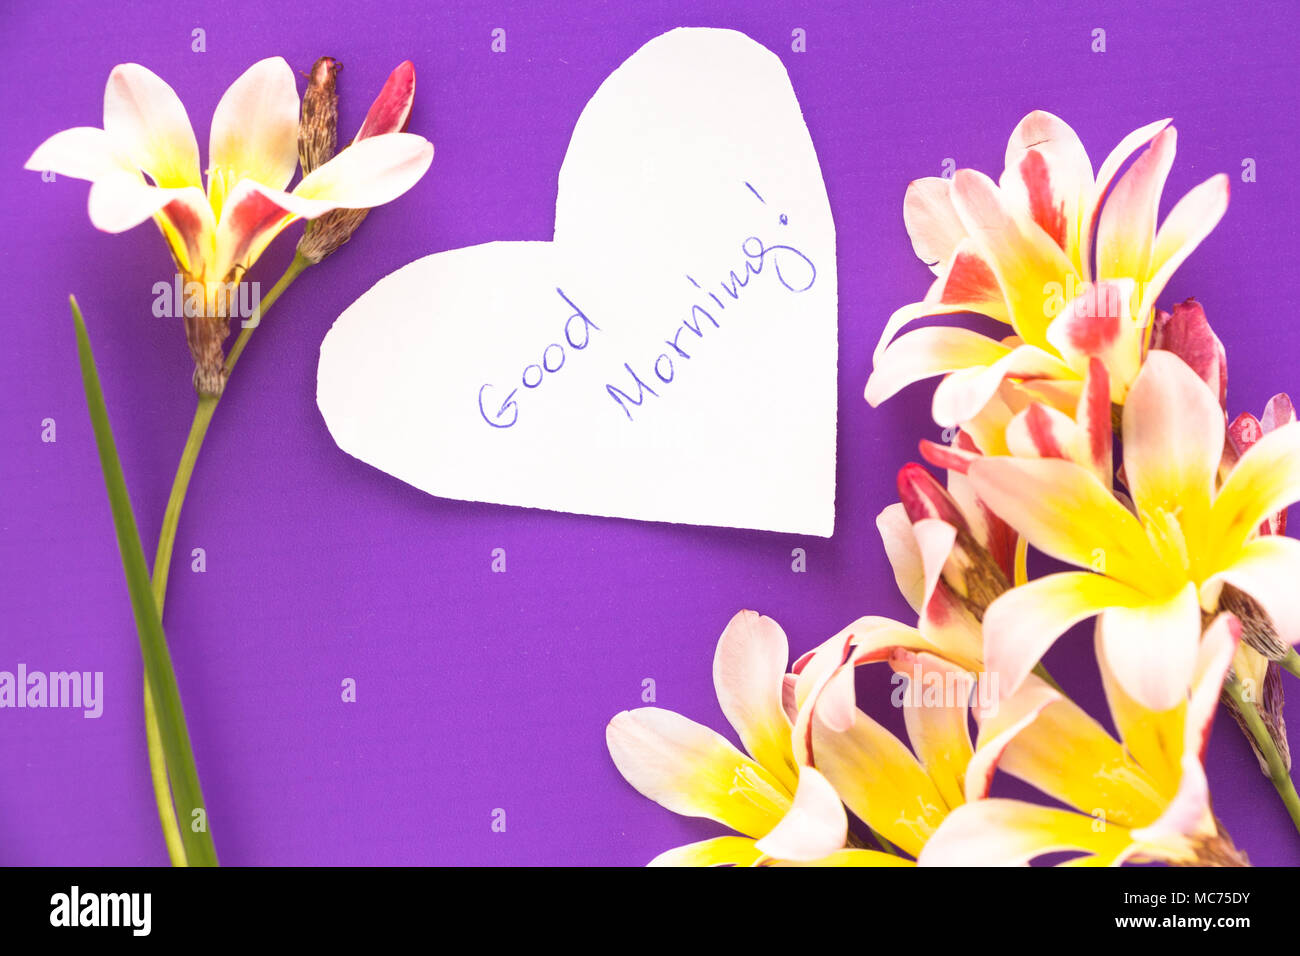 Note In Shape Of Heart With Words Good Morning With Flowers On